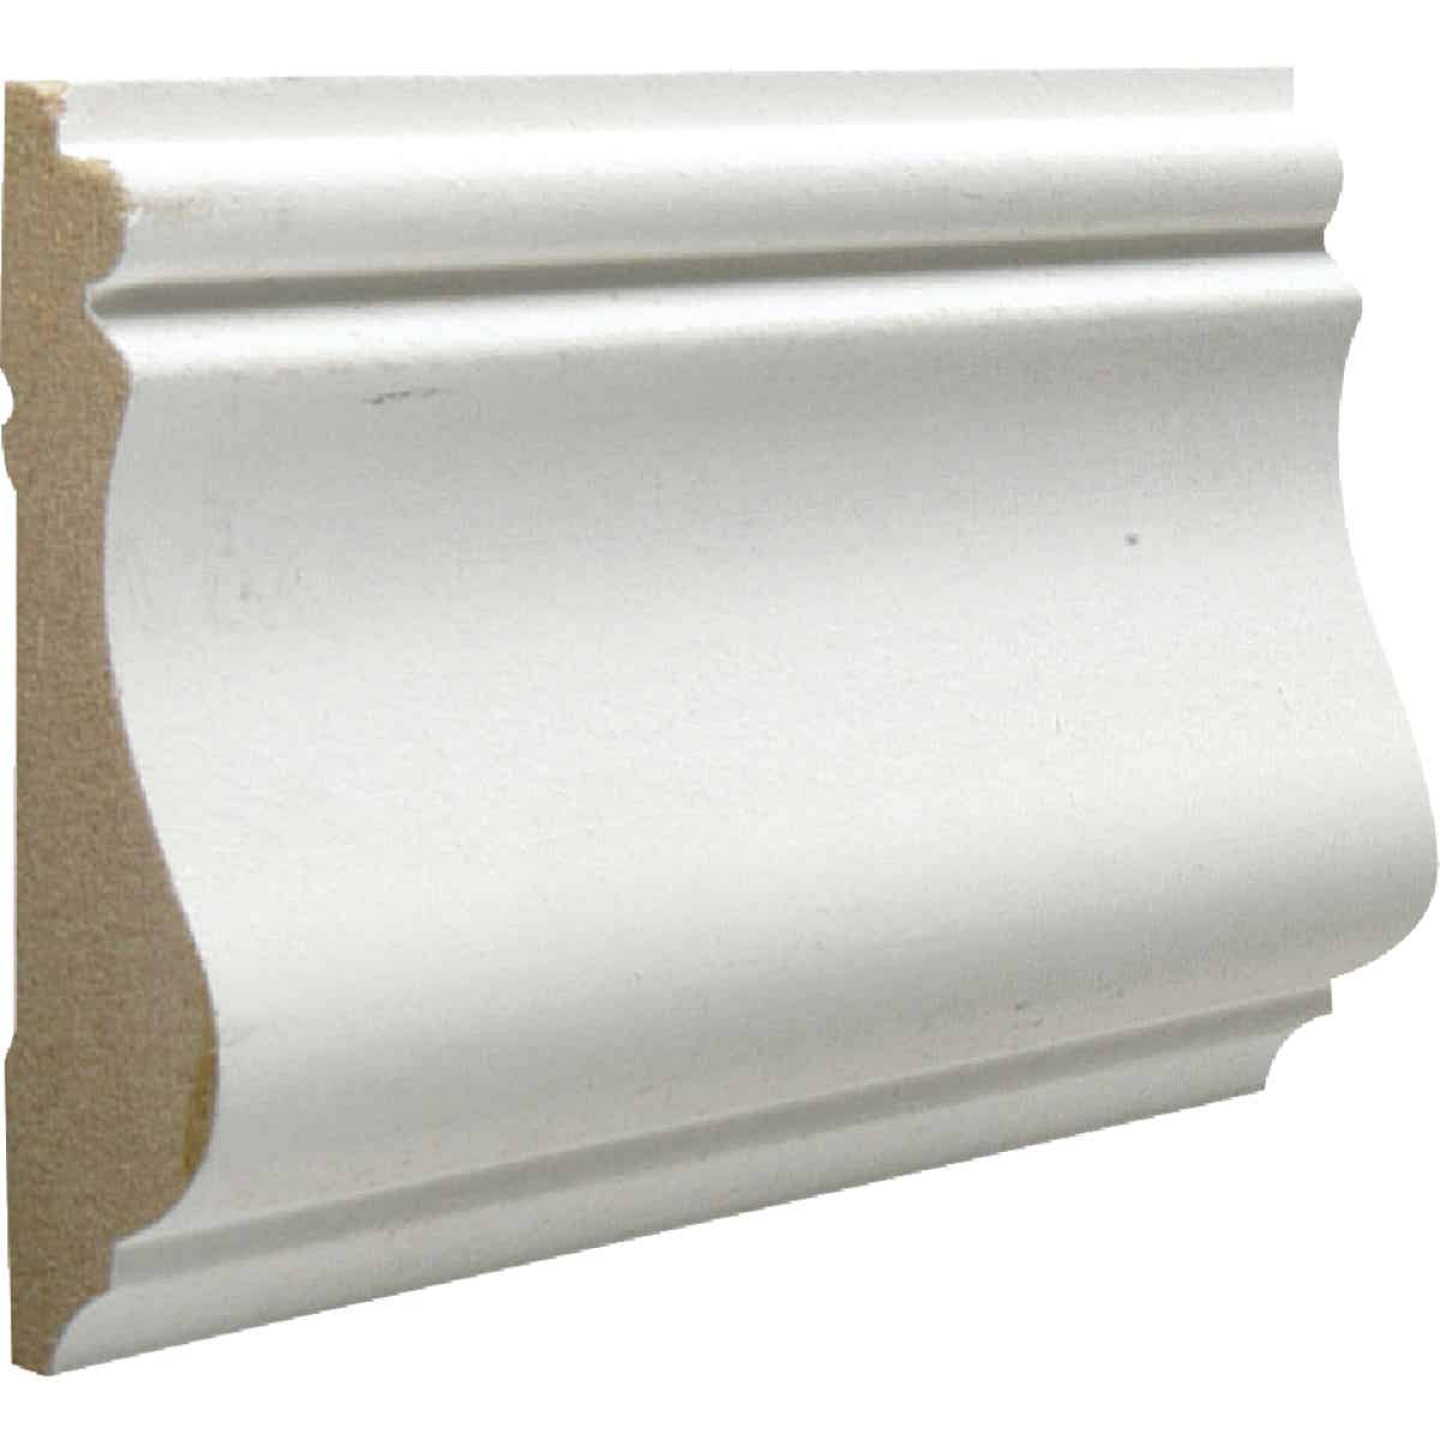 Cedar Creek 390 9/16 In. W. x 2-5/8 In. H. x 8 Ft. L. White MDF Colonial Chair Rail Molding Image 1